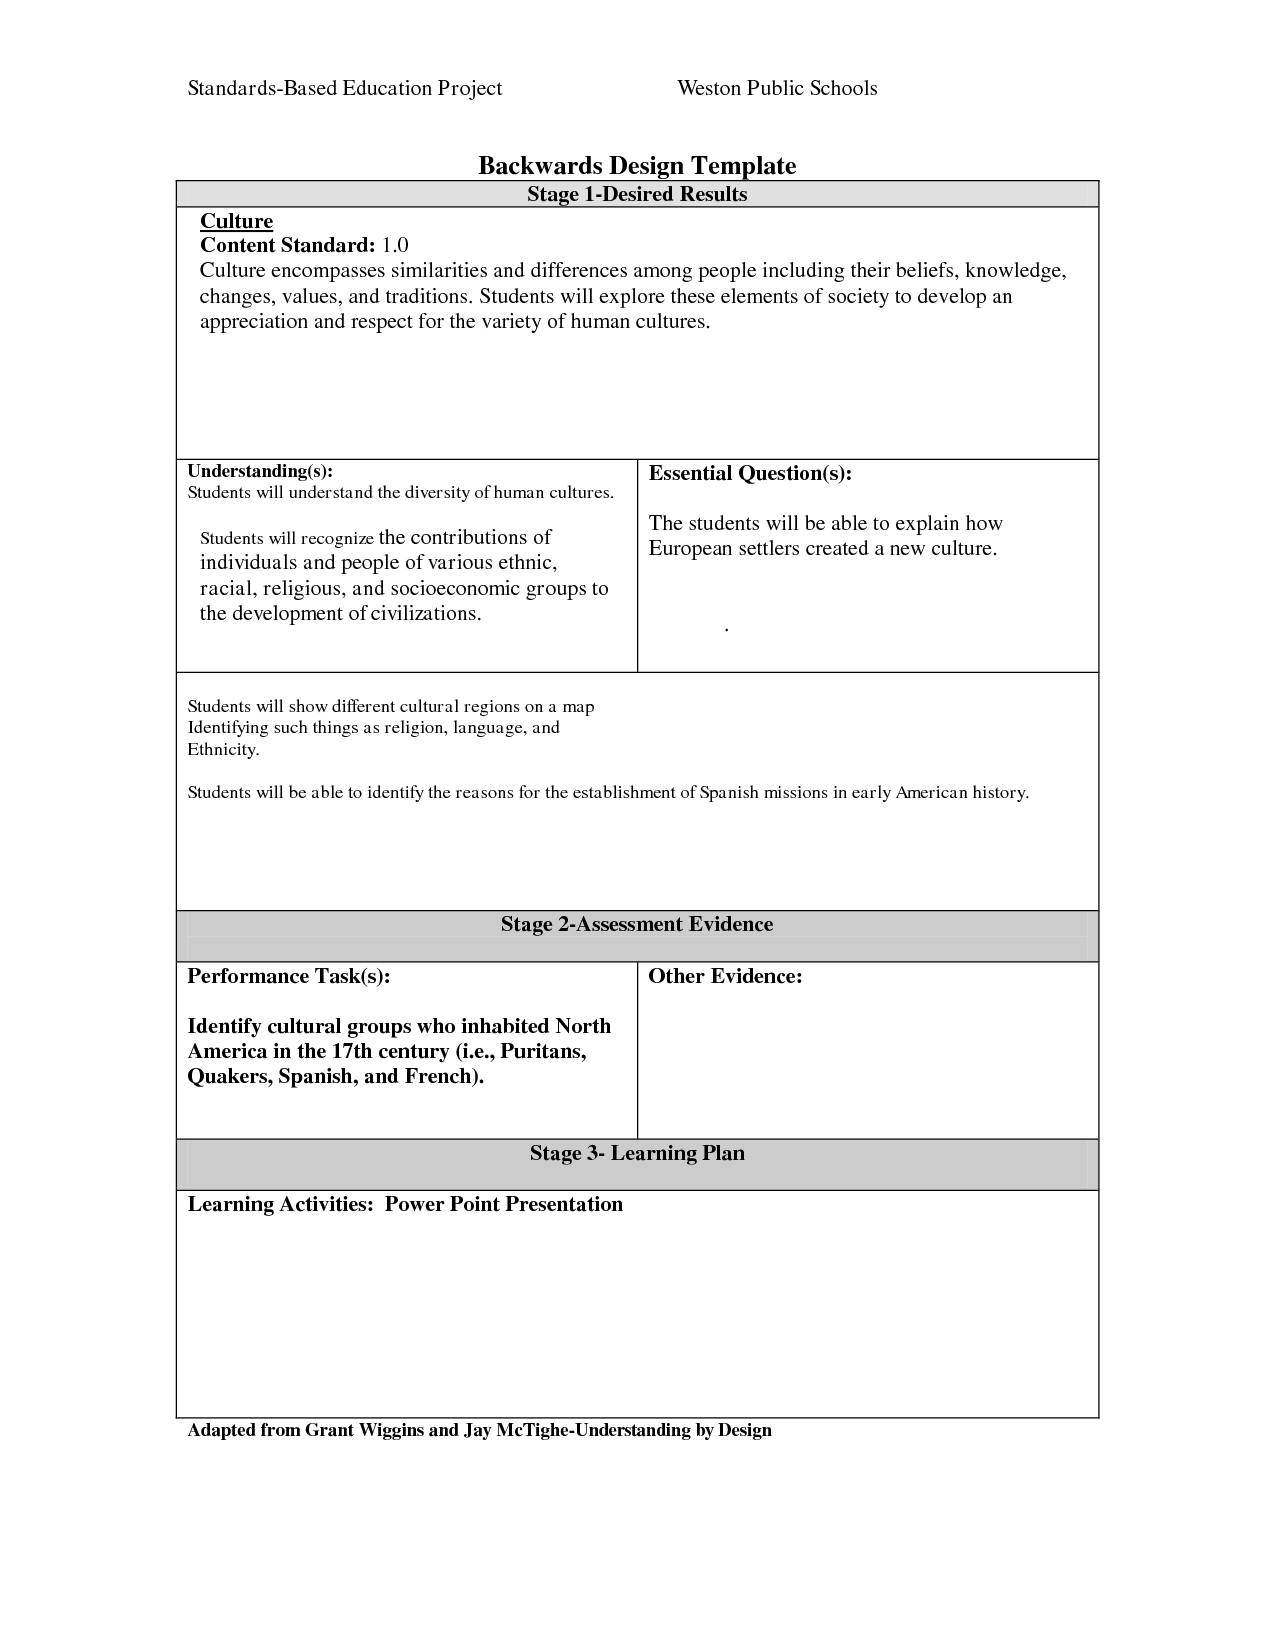 Backward design lesson template curriculum for music - Backwards design lesson plan examples ...